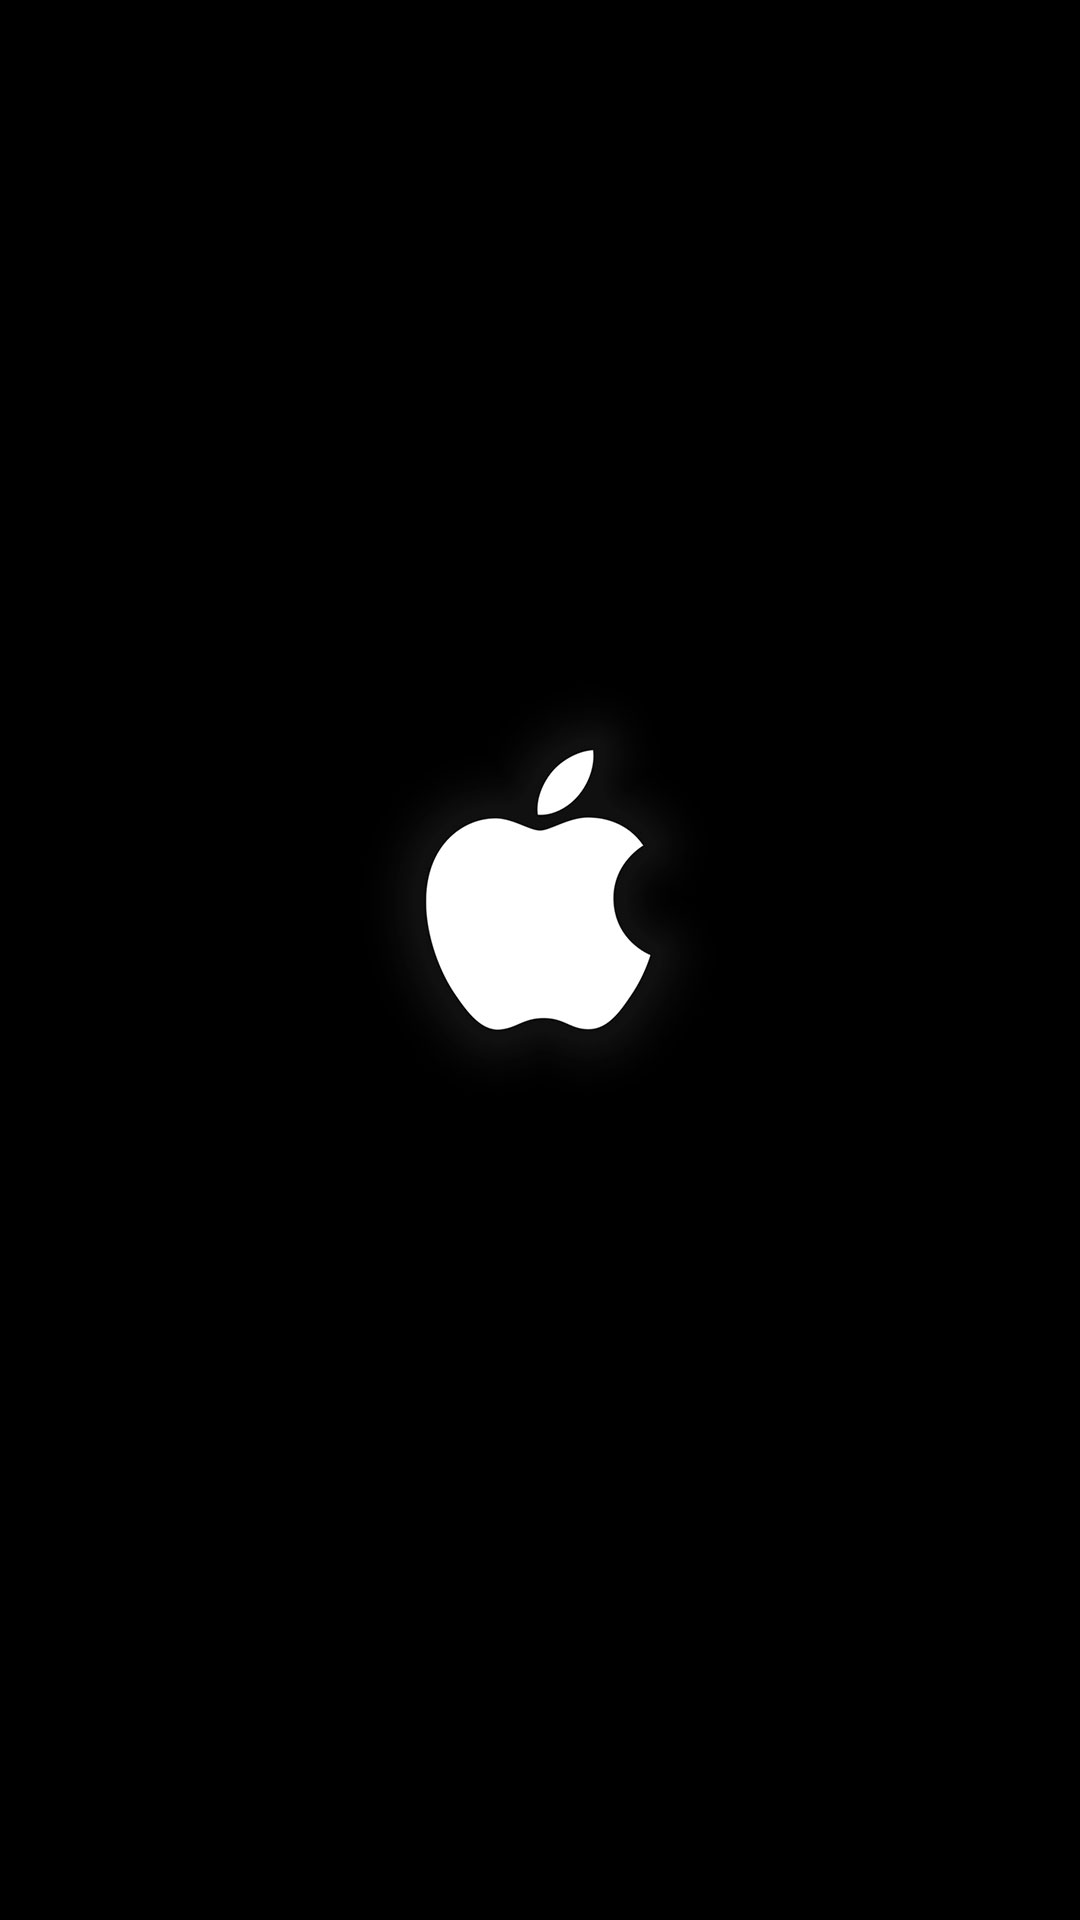 iPhone wallpaper apple logo black 3Wallpapers : notre sélection de fonds d'écran du 26/03/2018